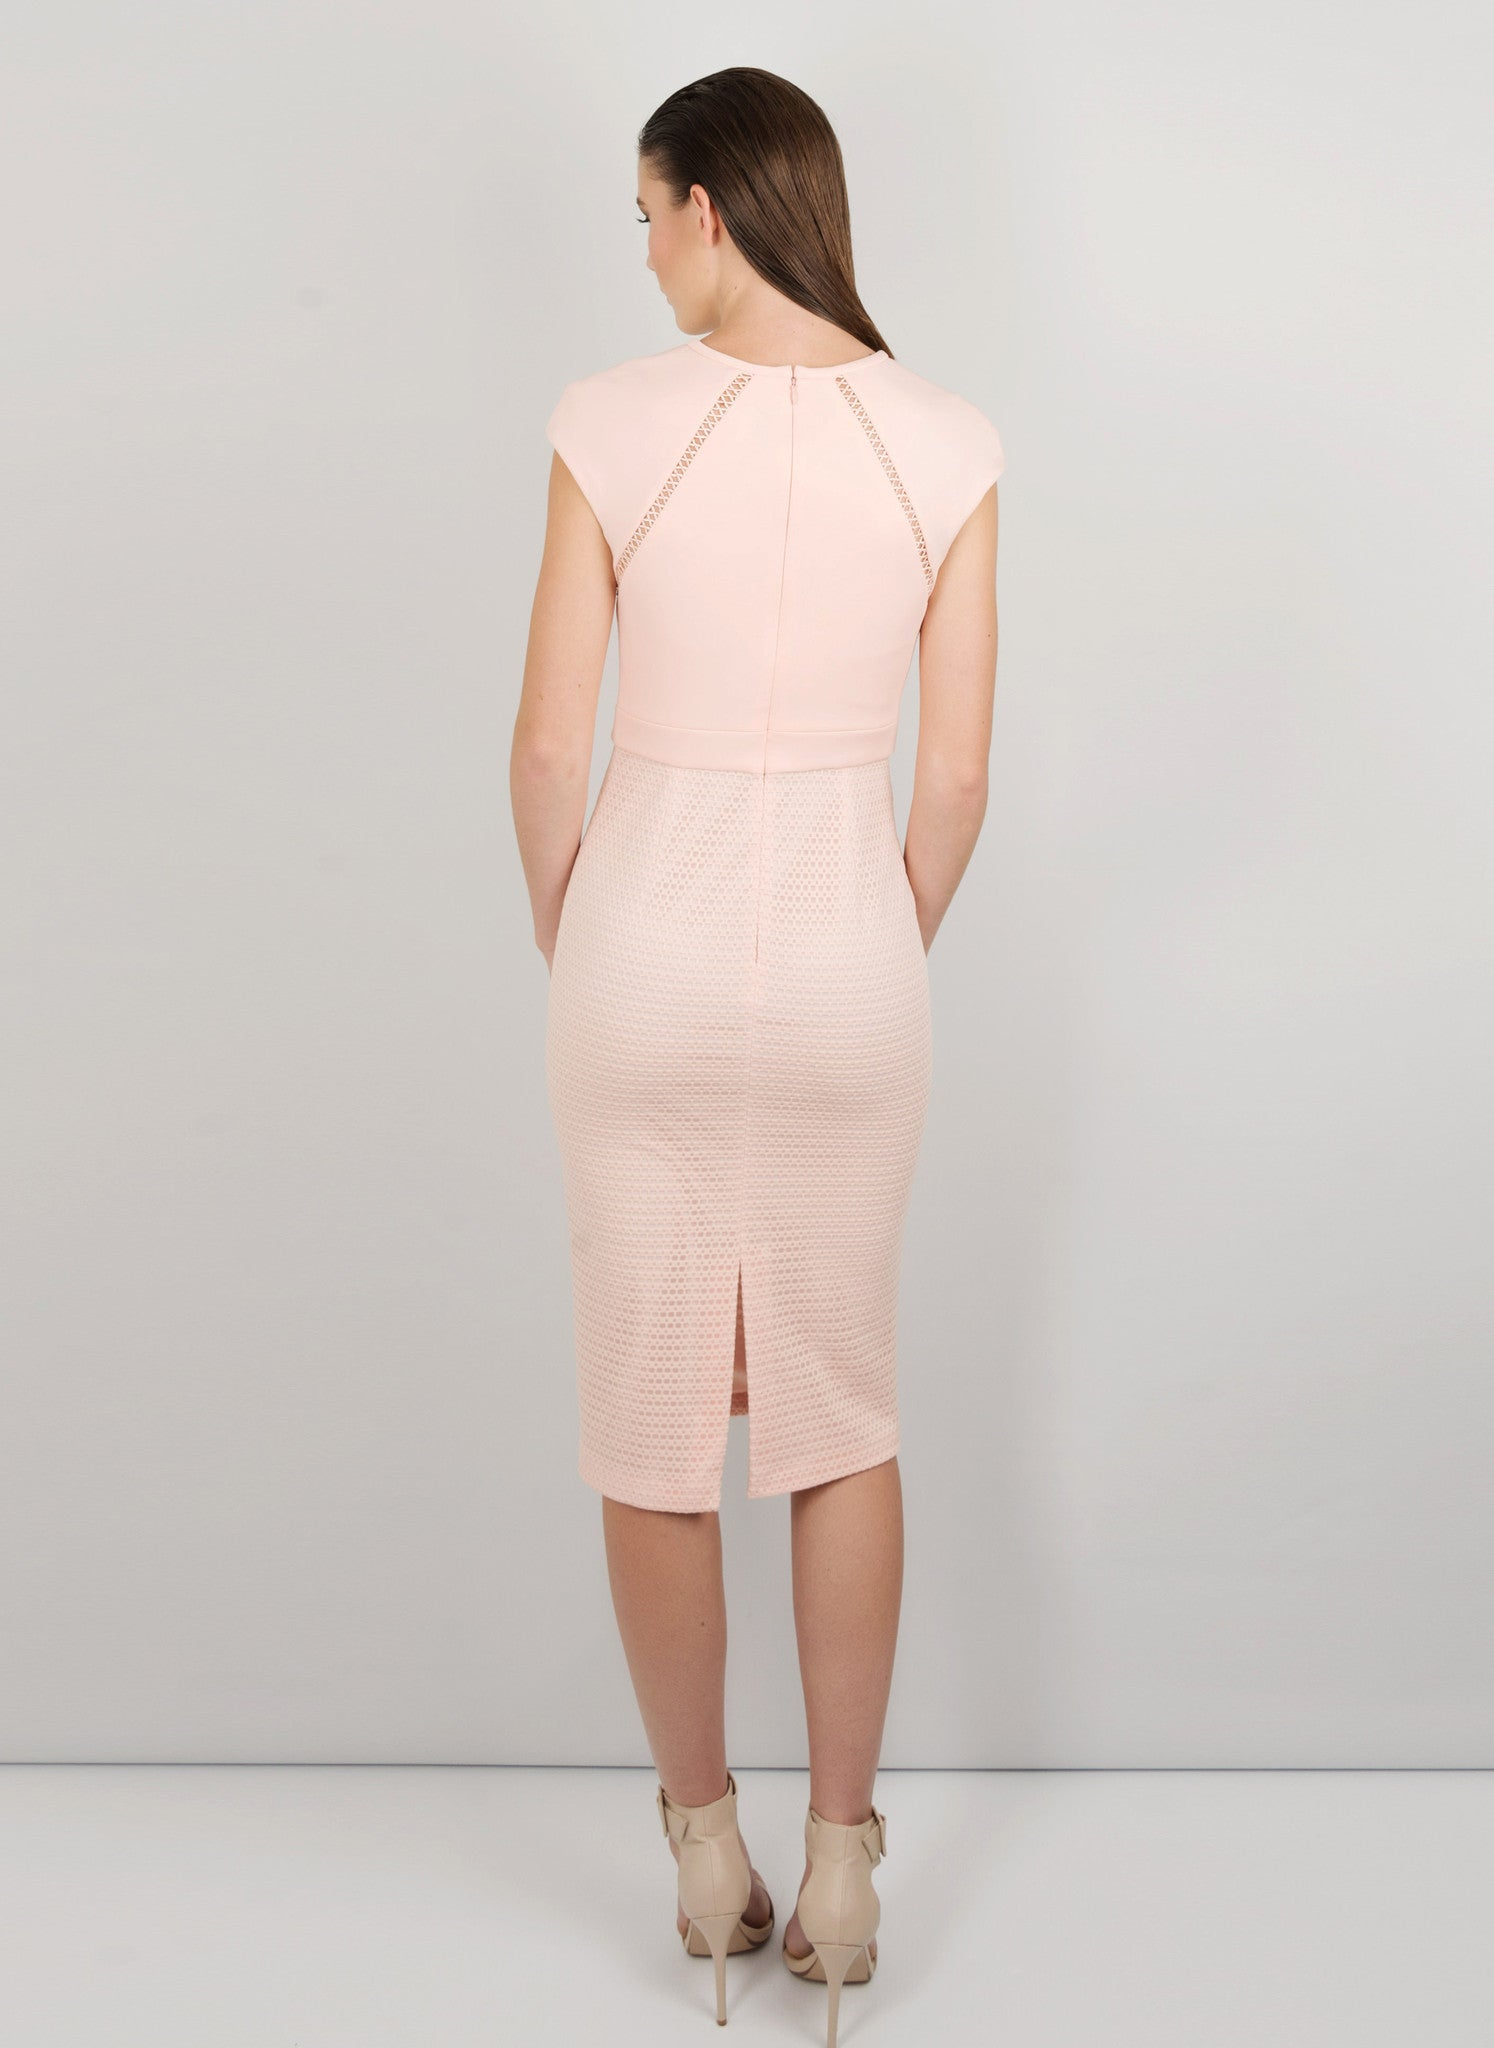 MADOLA-THE-LABEL. RAYSSA DRESS. Lattice trim detailing. Fully lined, below-the-knee hemline, split back. Designed in Australia